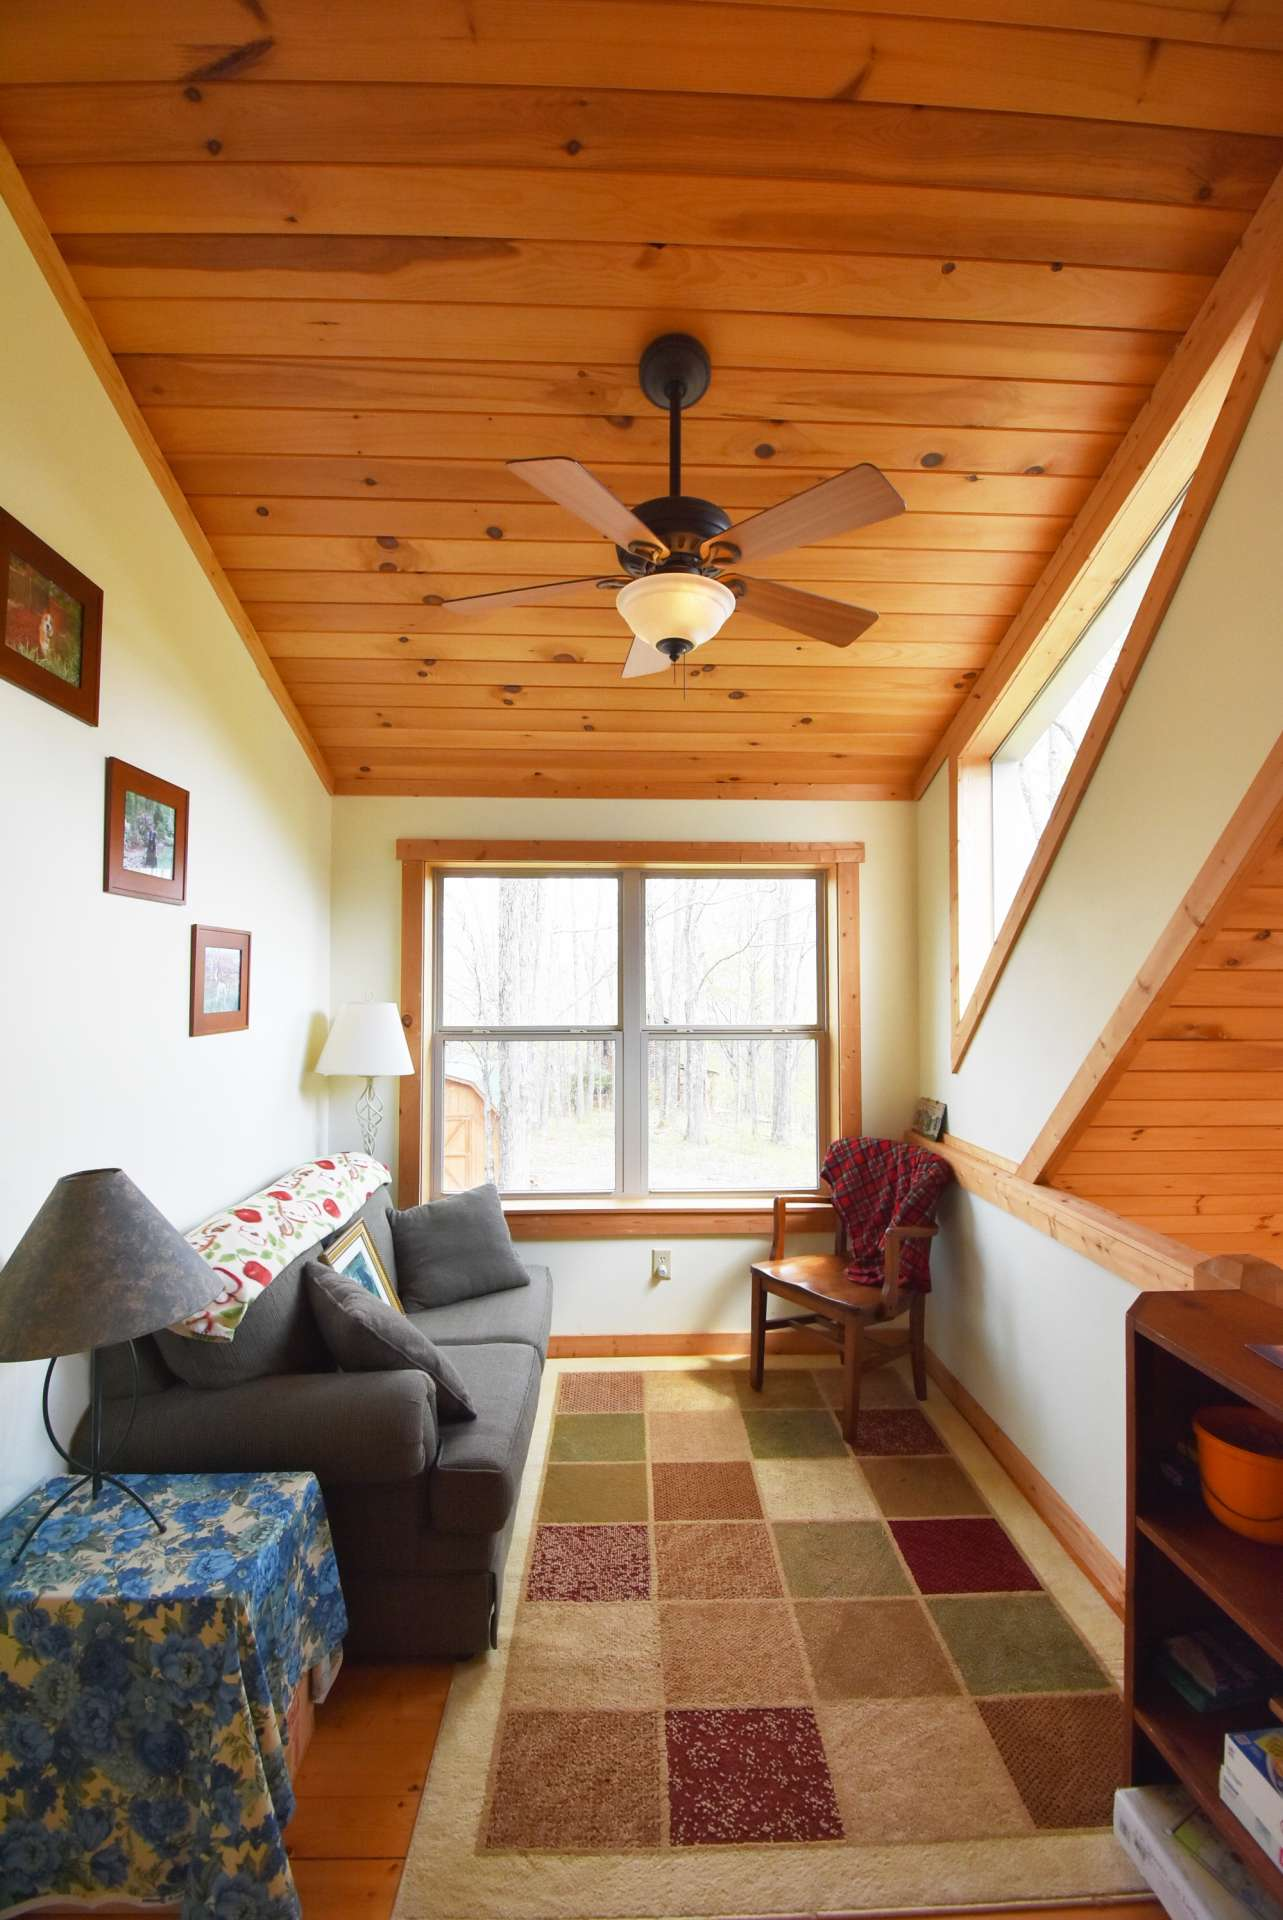 A cozy loft area overlooks the great room and the perfect place for reading or working puzzles.